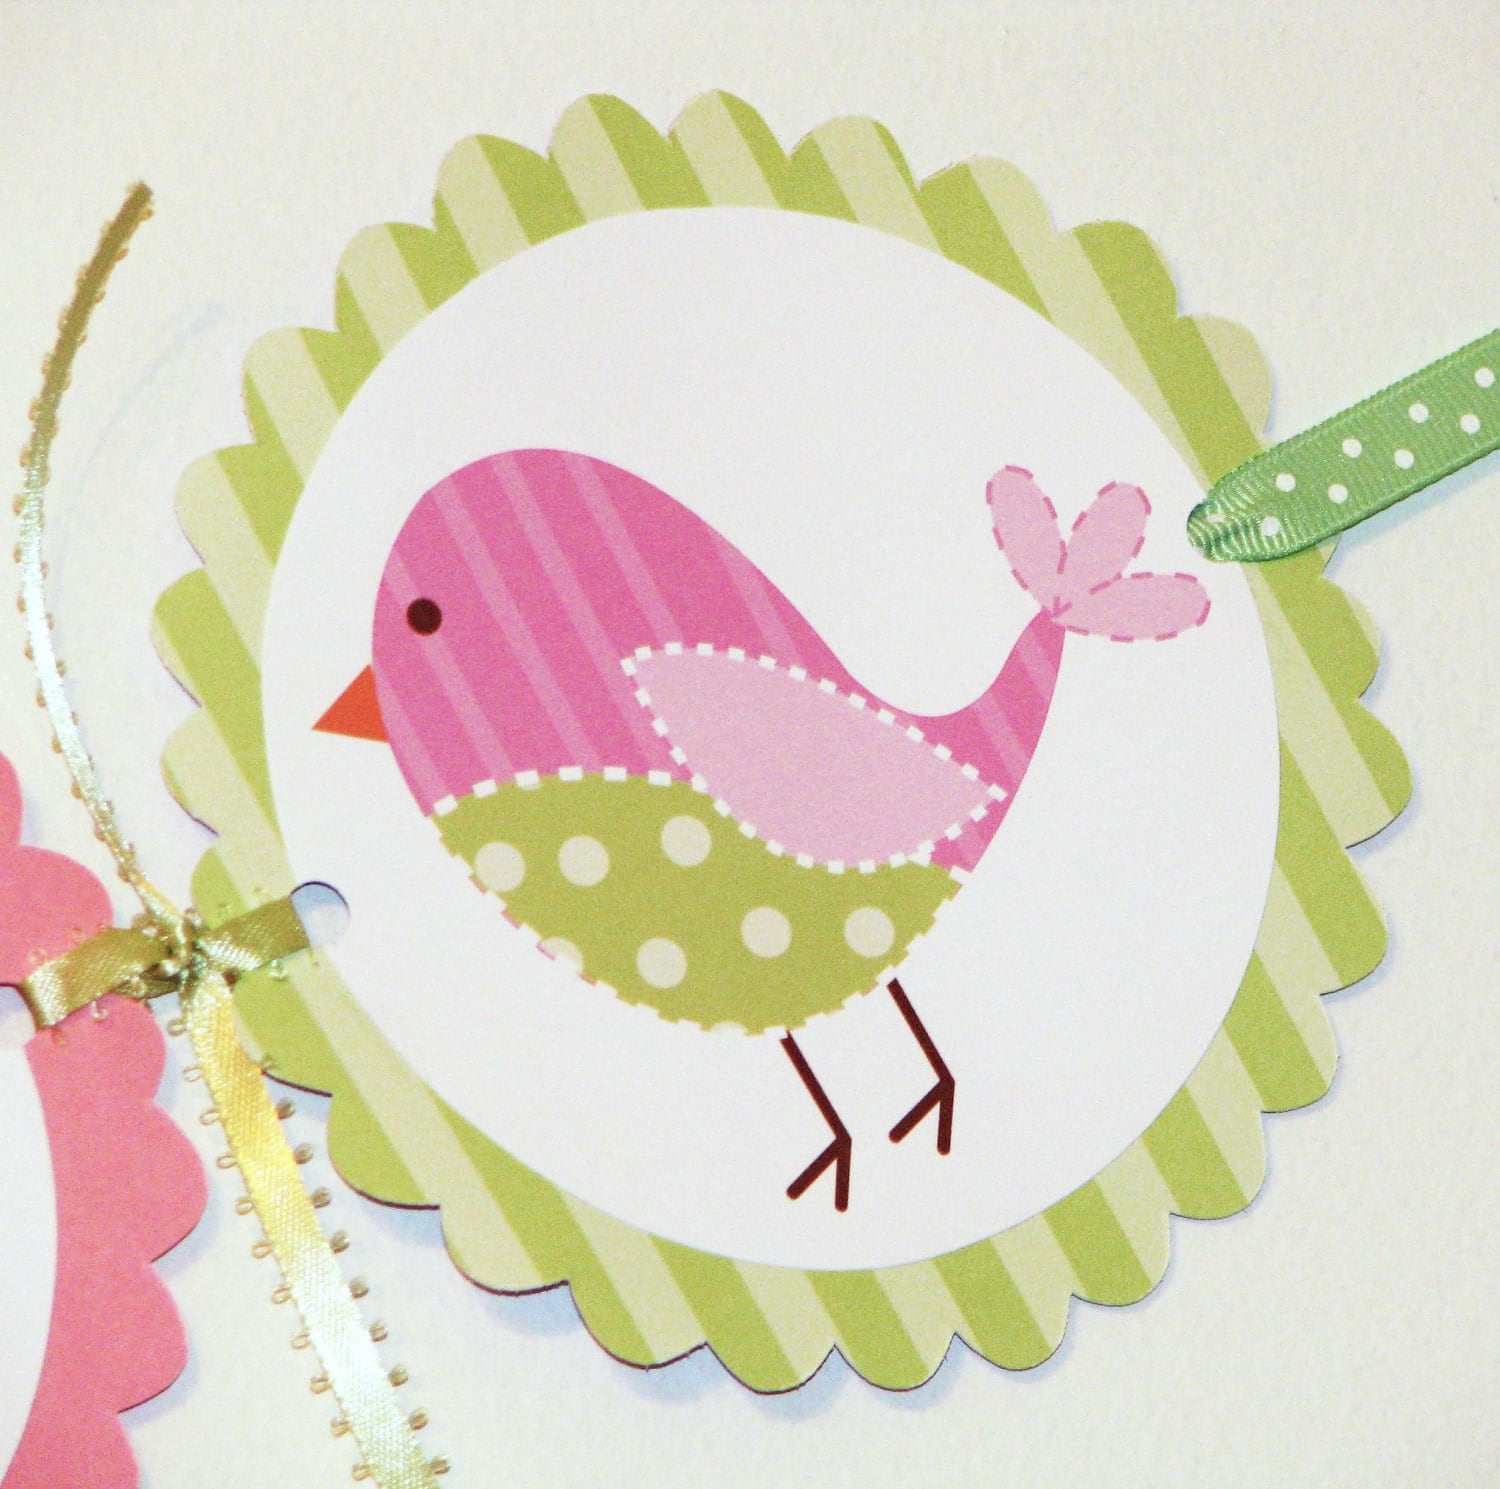 Its A Girl Baby Shower Banner Cute Pink and Green Birds